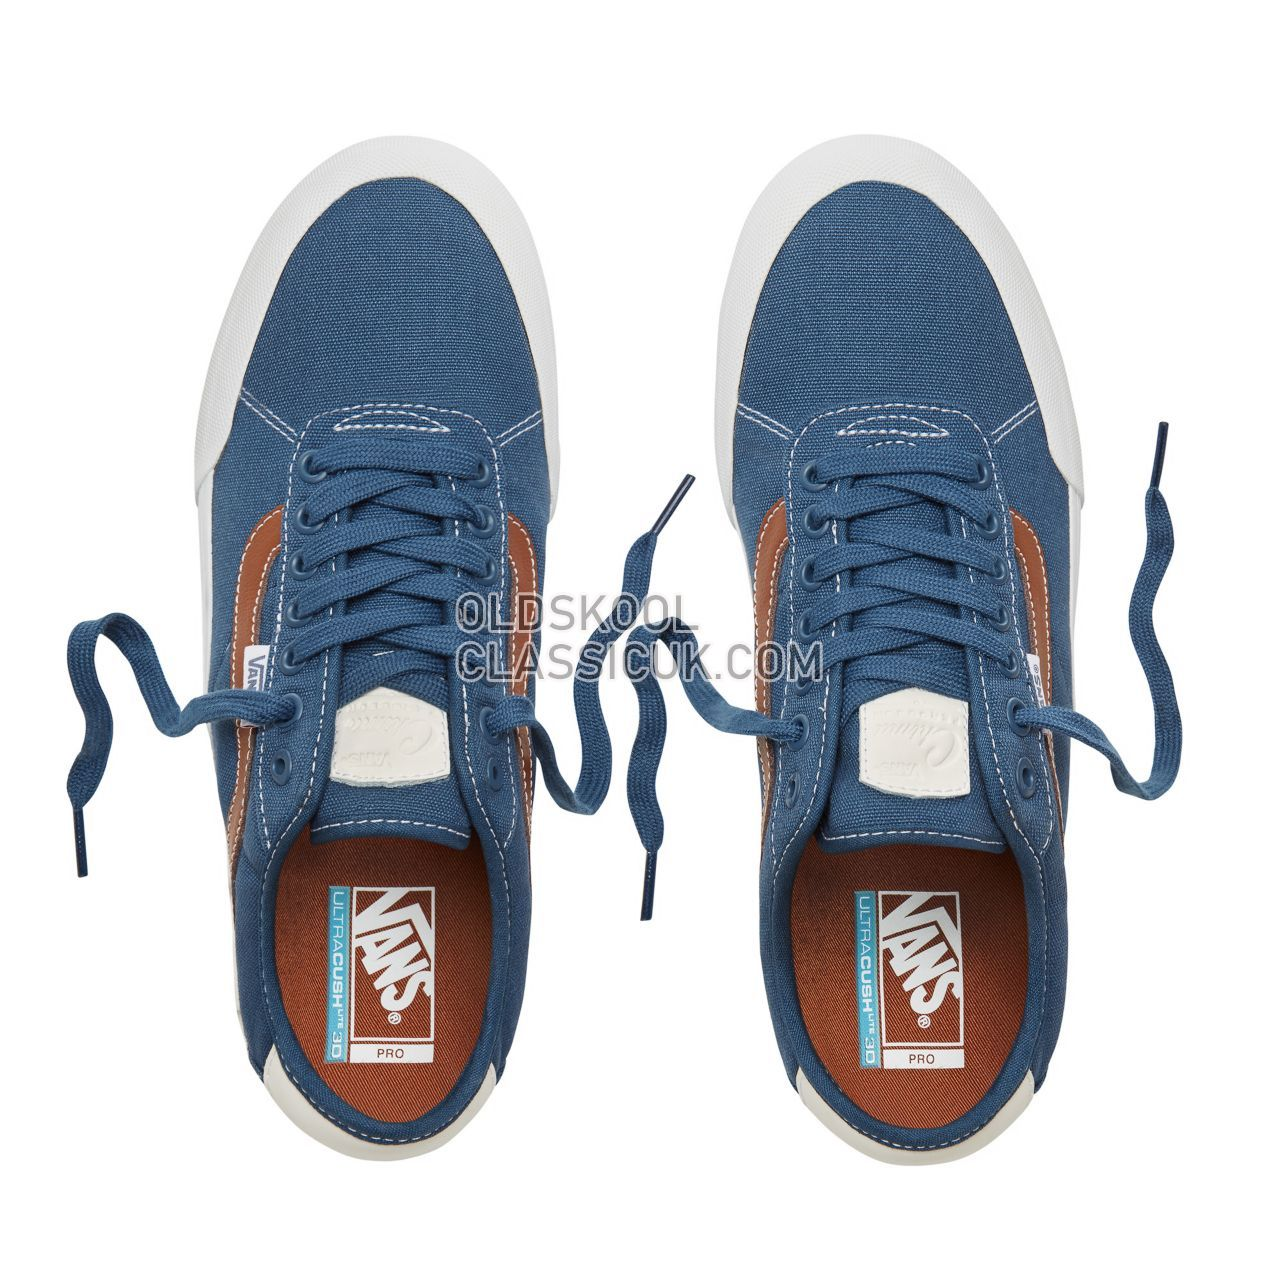 Vans Chima Pro 2 Sneakers Mens Dark Denim/Dachshund VA3MTIU1G Shoes